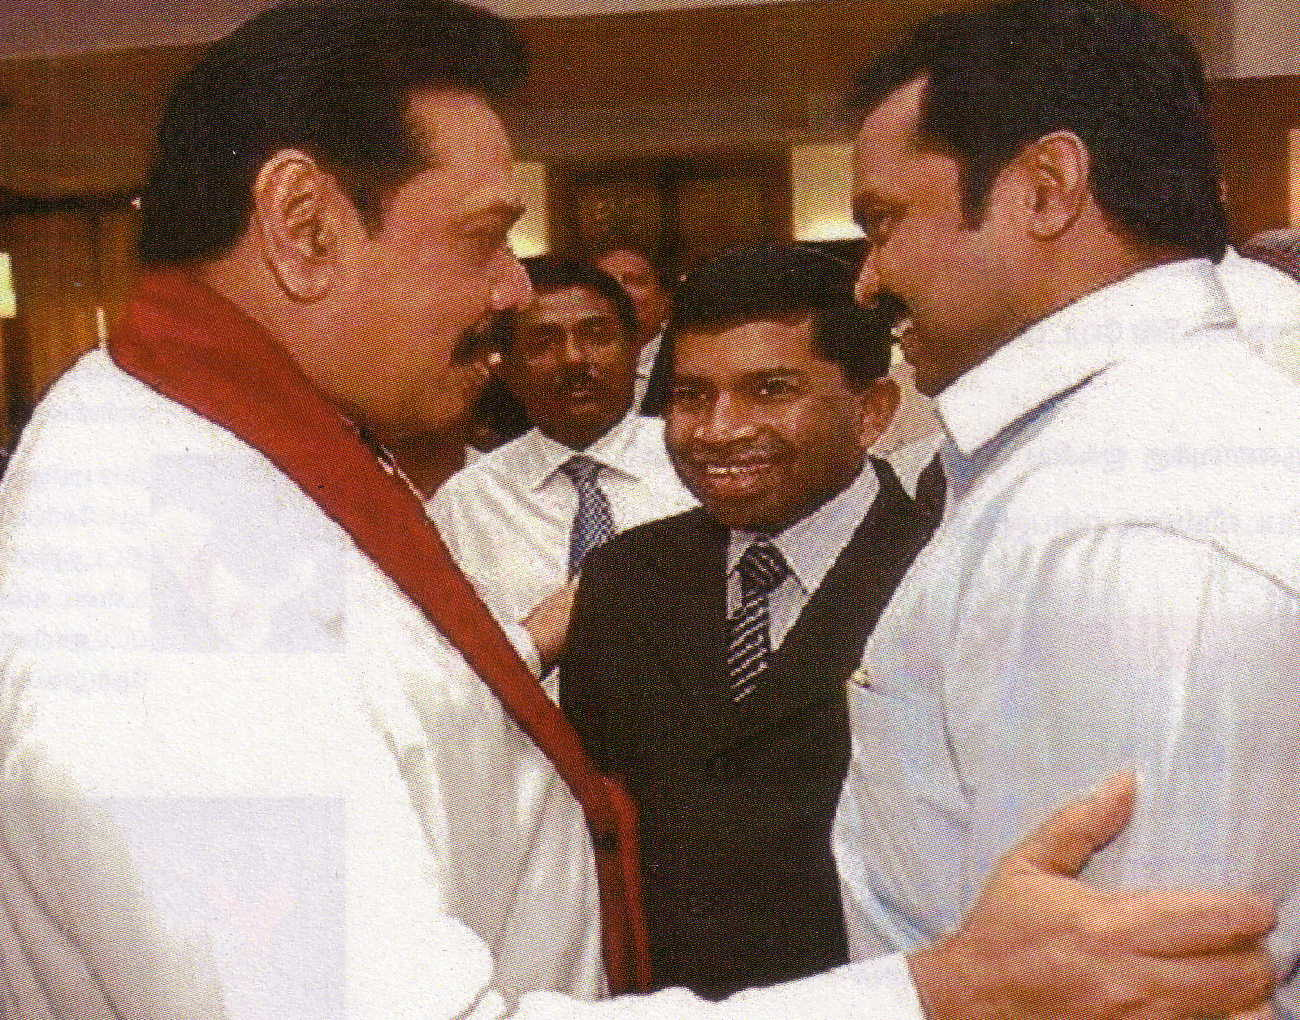 Lt to Rt, Mahinda Rajapaksa, Pillaiyan and Karuna